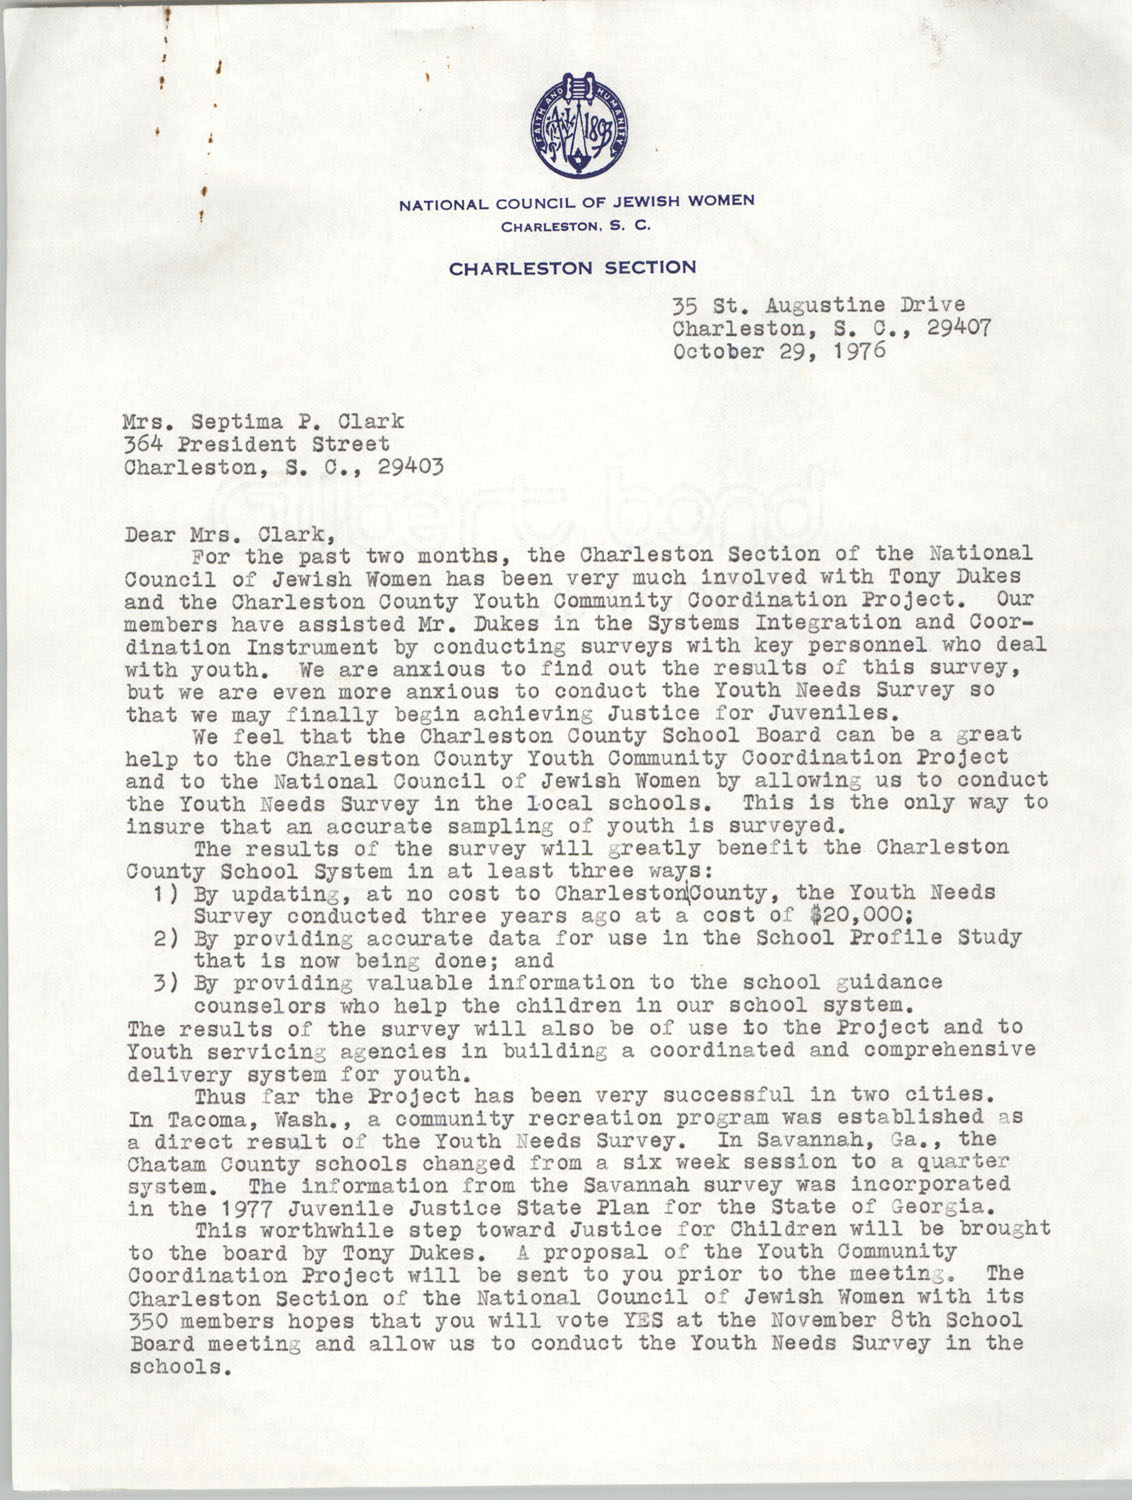 Letter from Ann M. Hellman to Septima P. Clark, October 29, 1976, Page 1